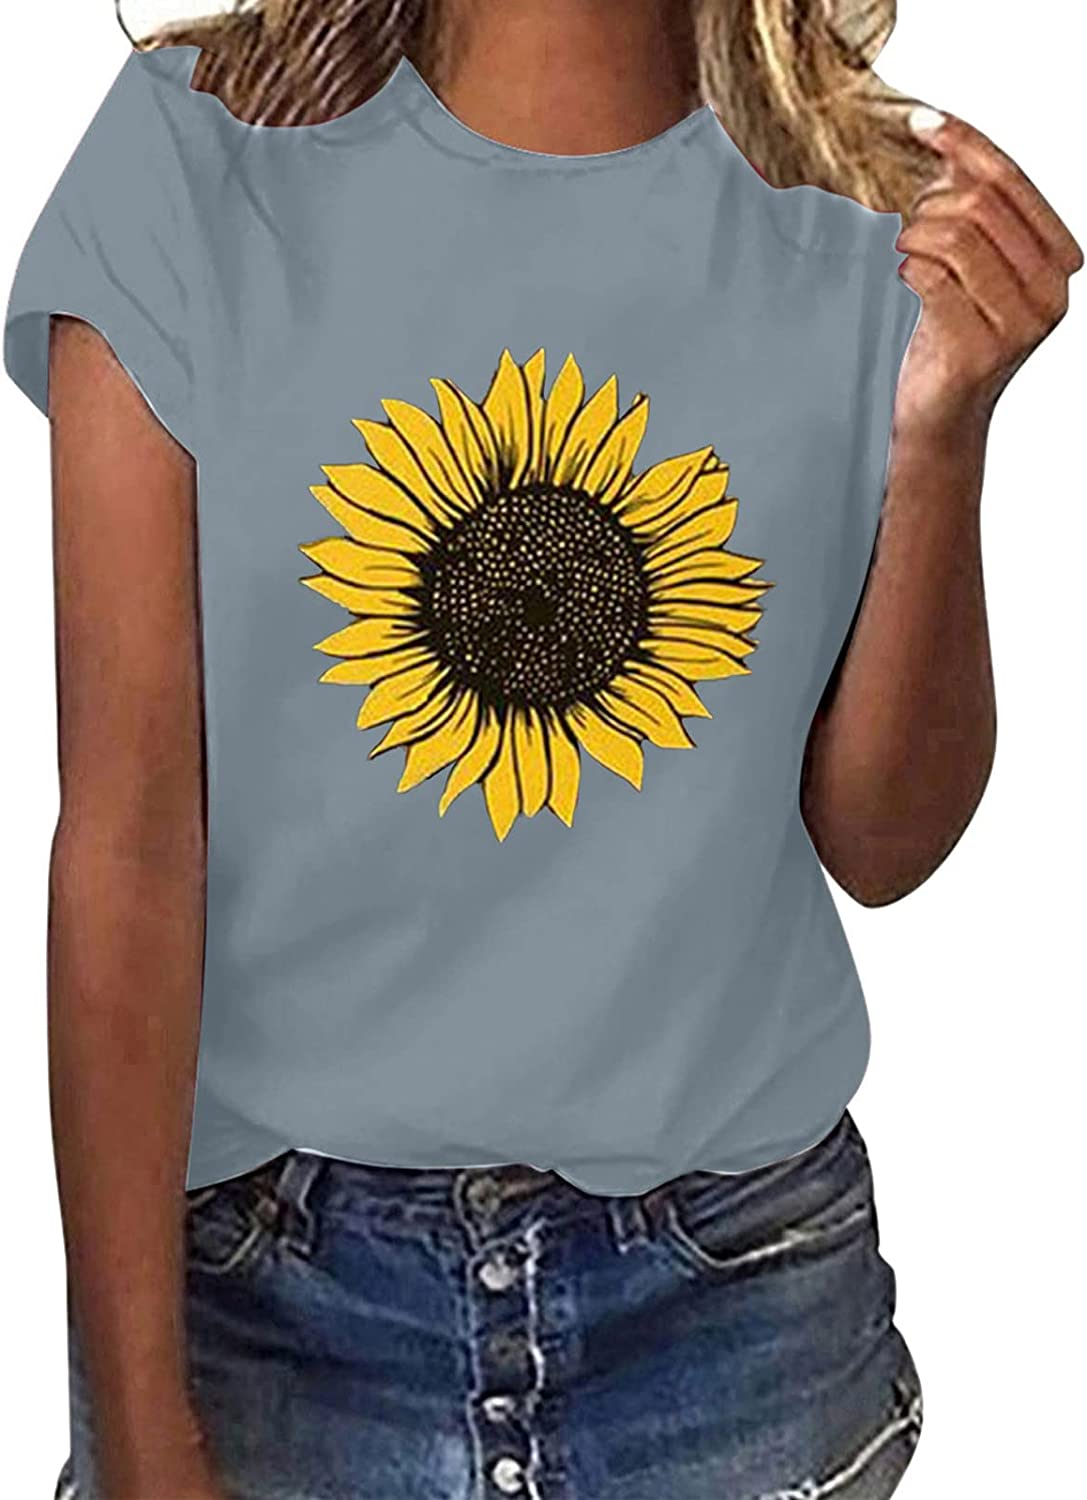 T Shirts Women Graphic Funny Printed Short Sleeves Tee Tops Casual Dandelion Printed Loose Blouses Tunic Tees